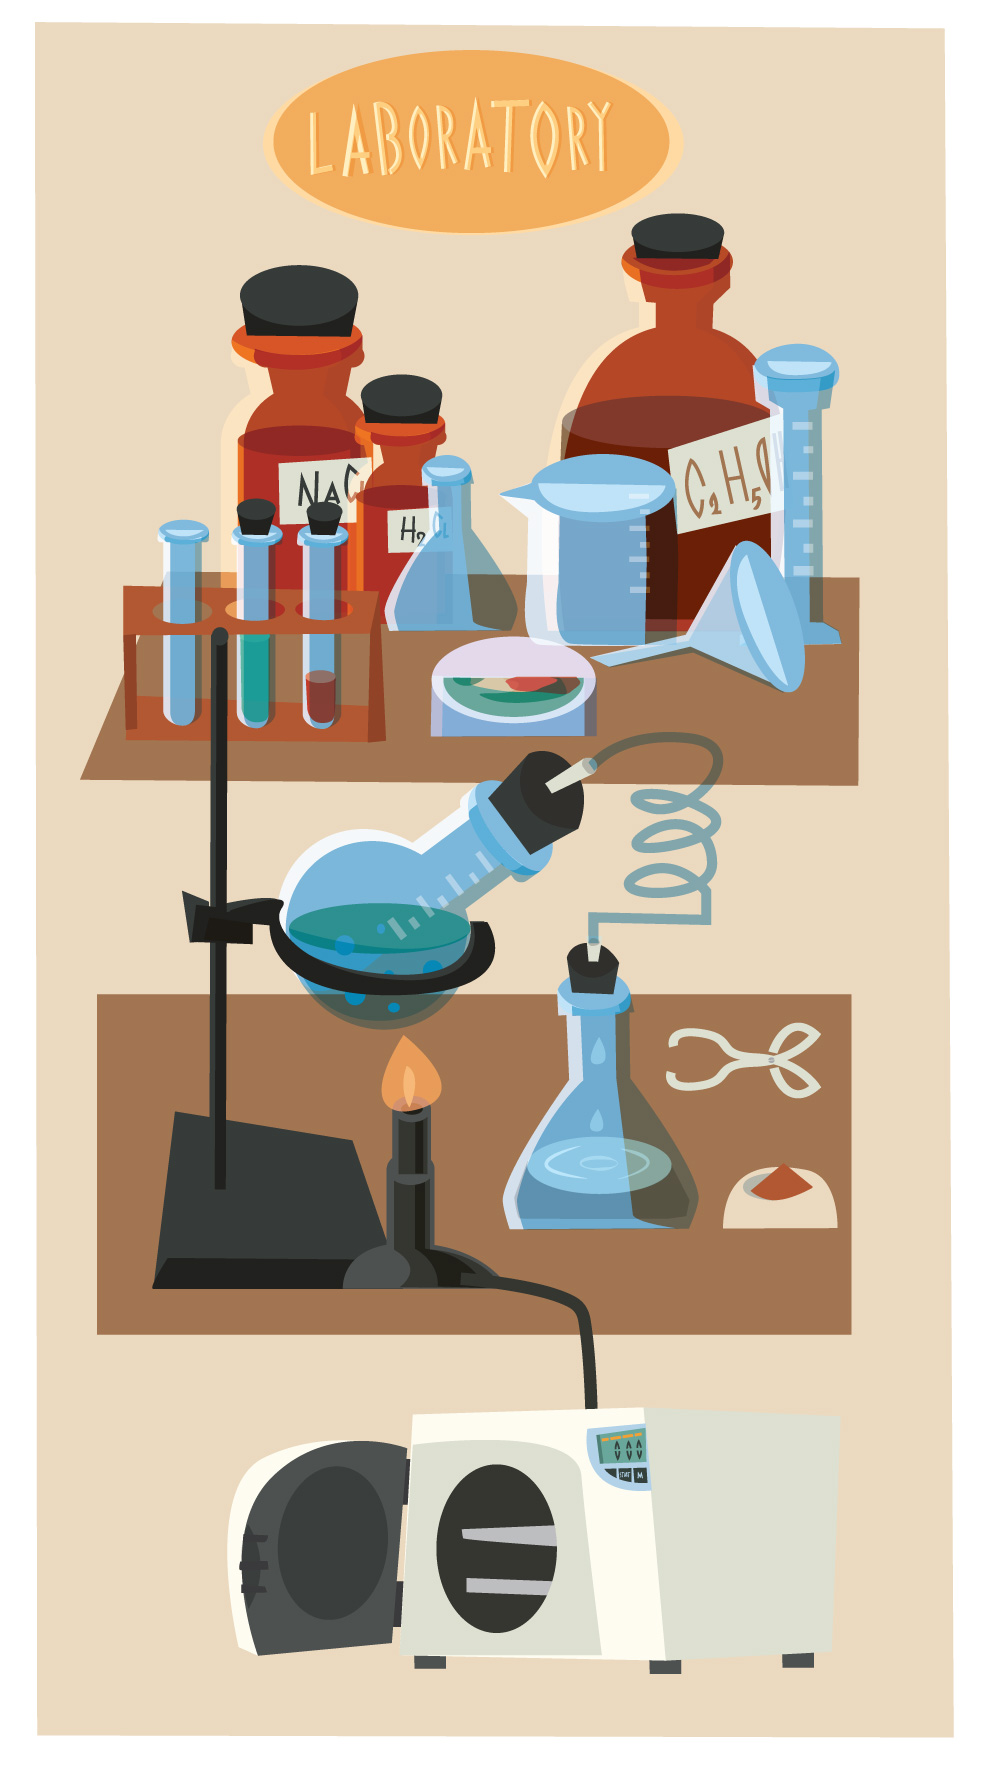 Chemical objects and tubes illustration vector Photoshop brush